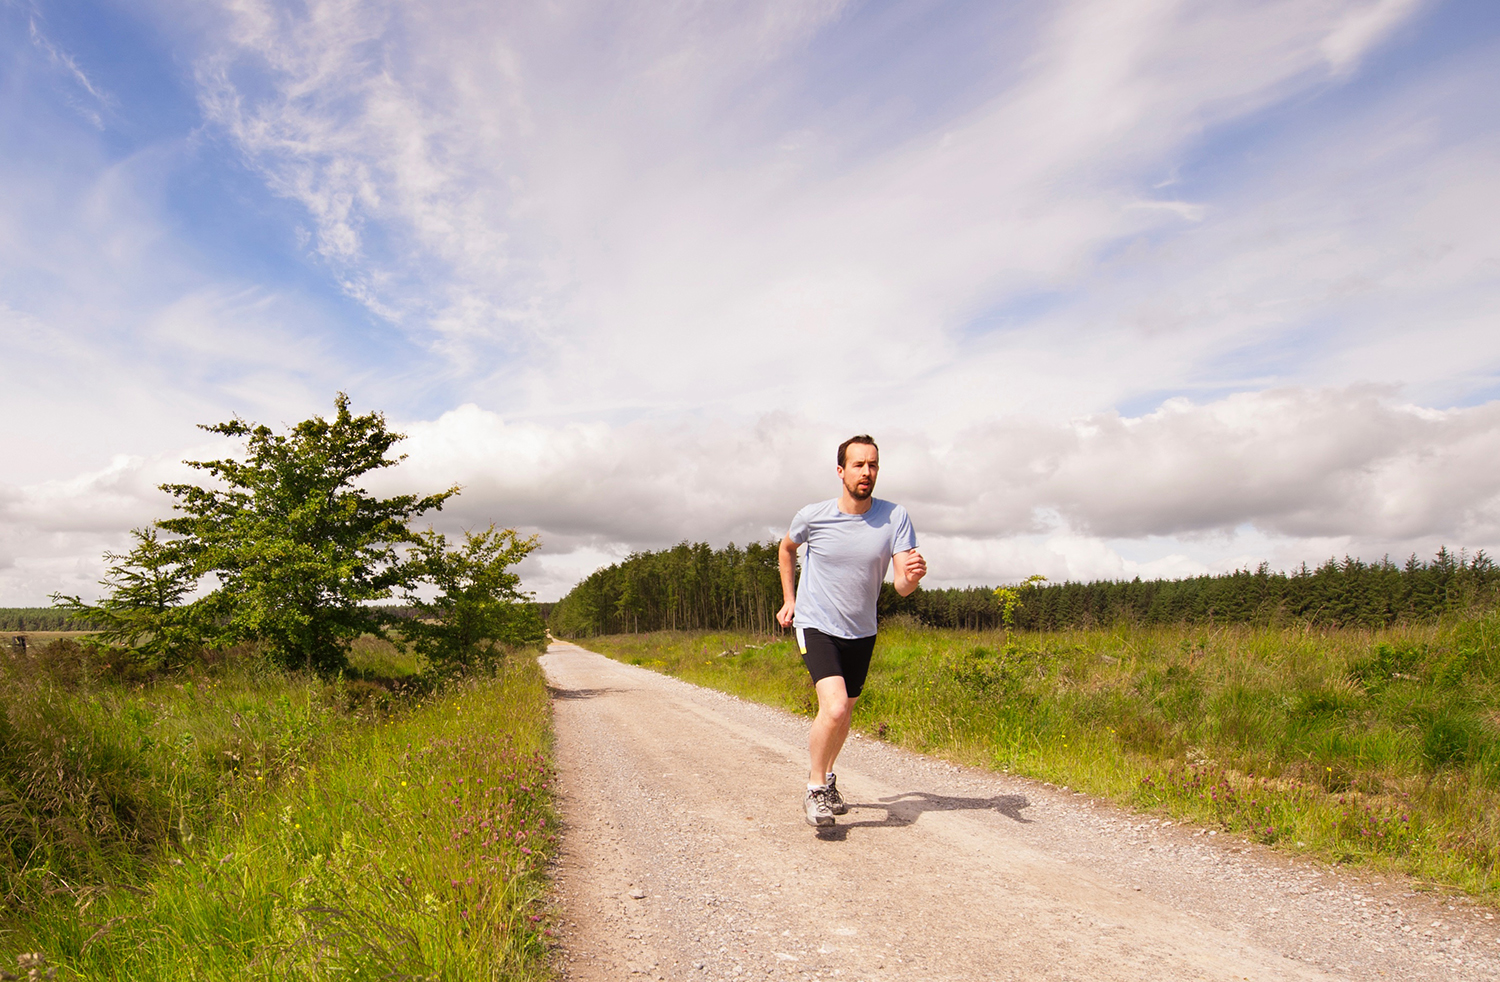 Fitness Man Sprinting Outdoors